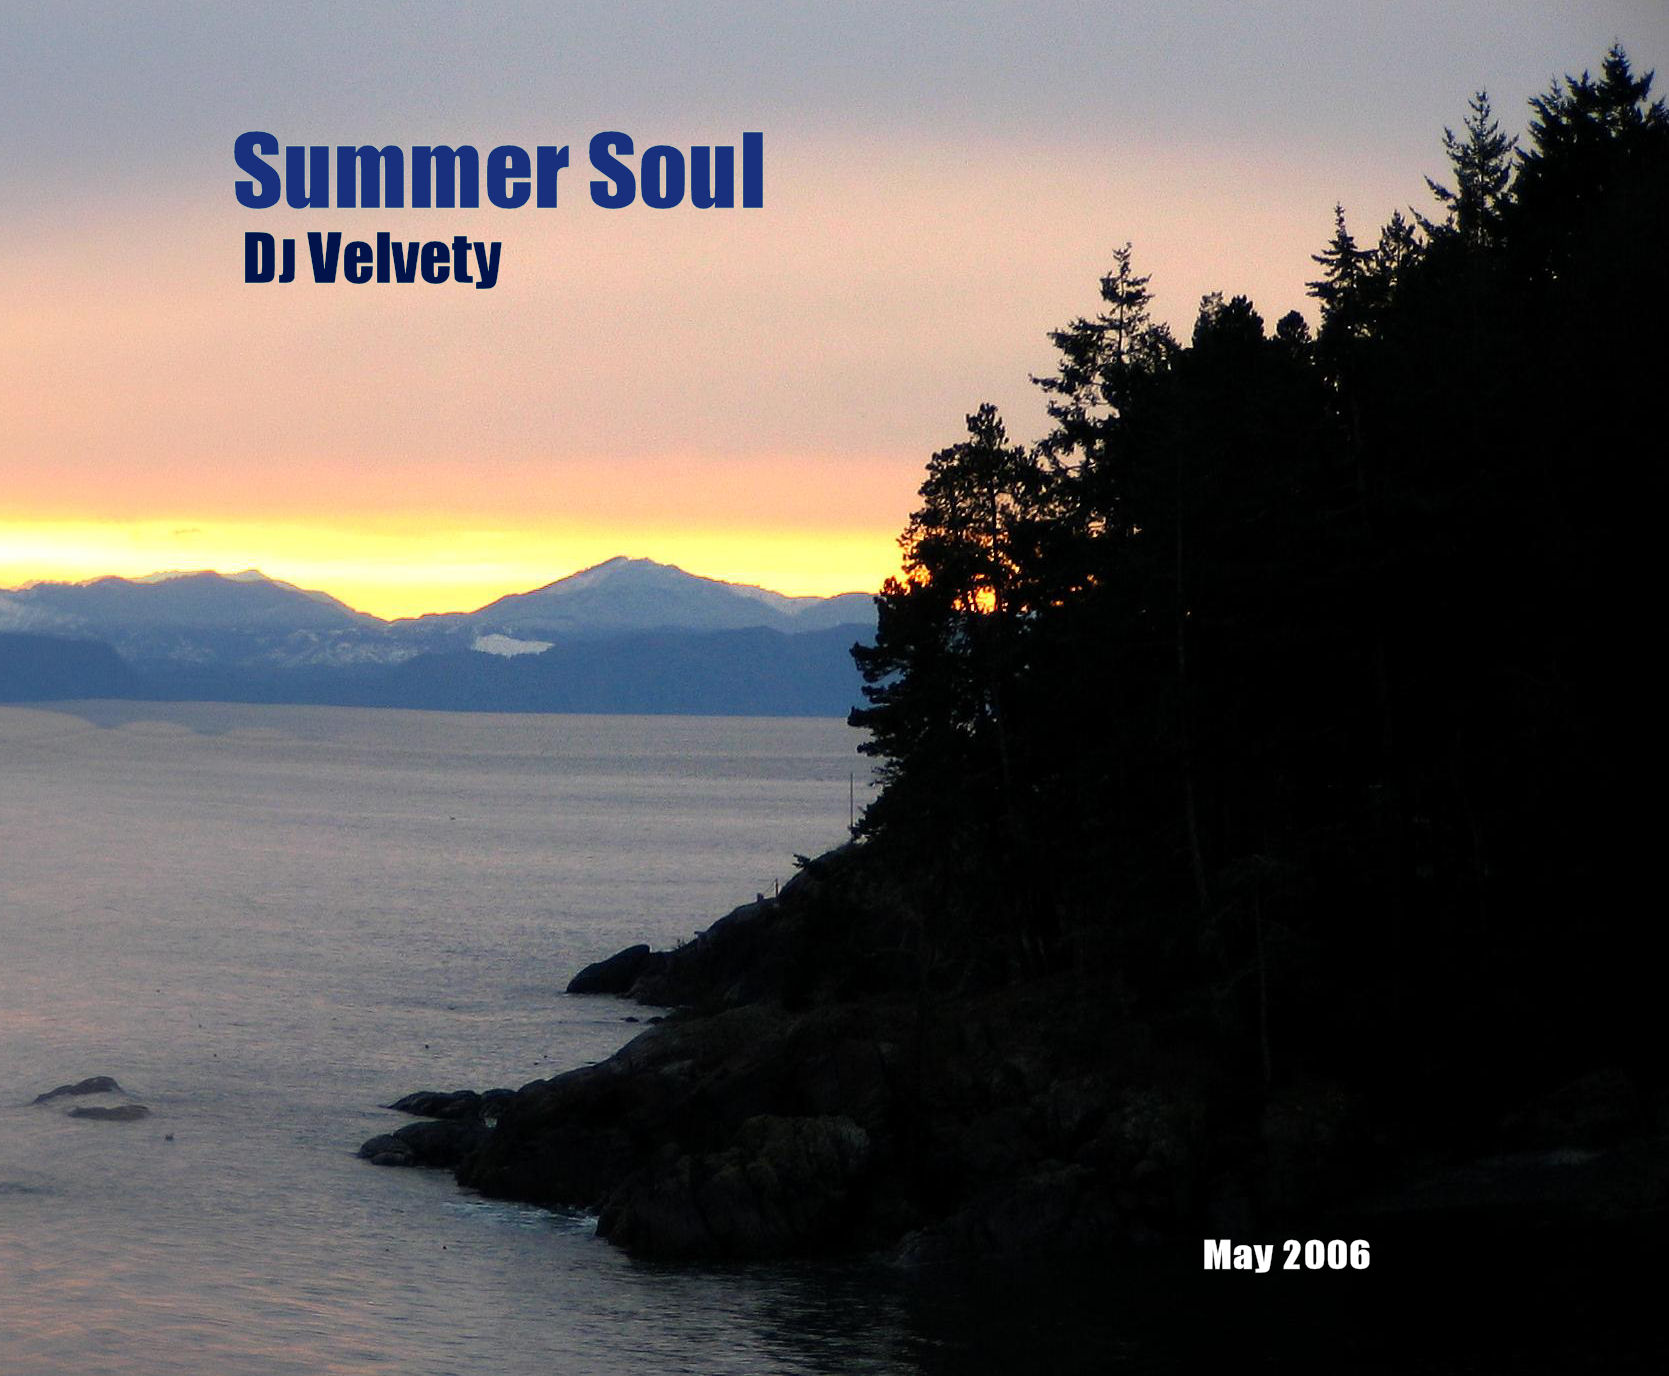 Velvety Couch - Graham Davis - DJ Velvety - Summer Soul CD Cover